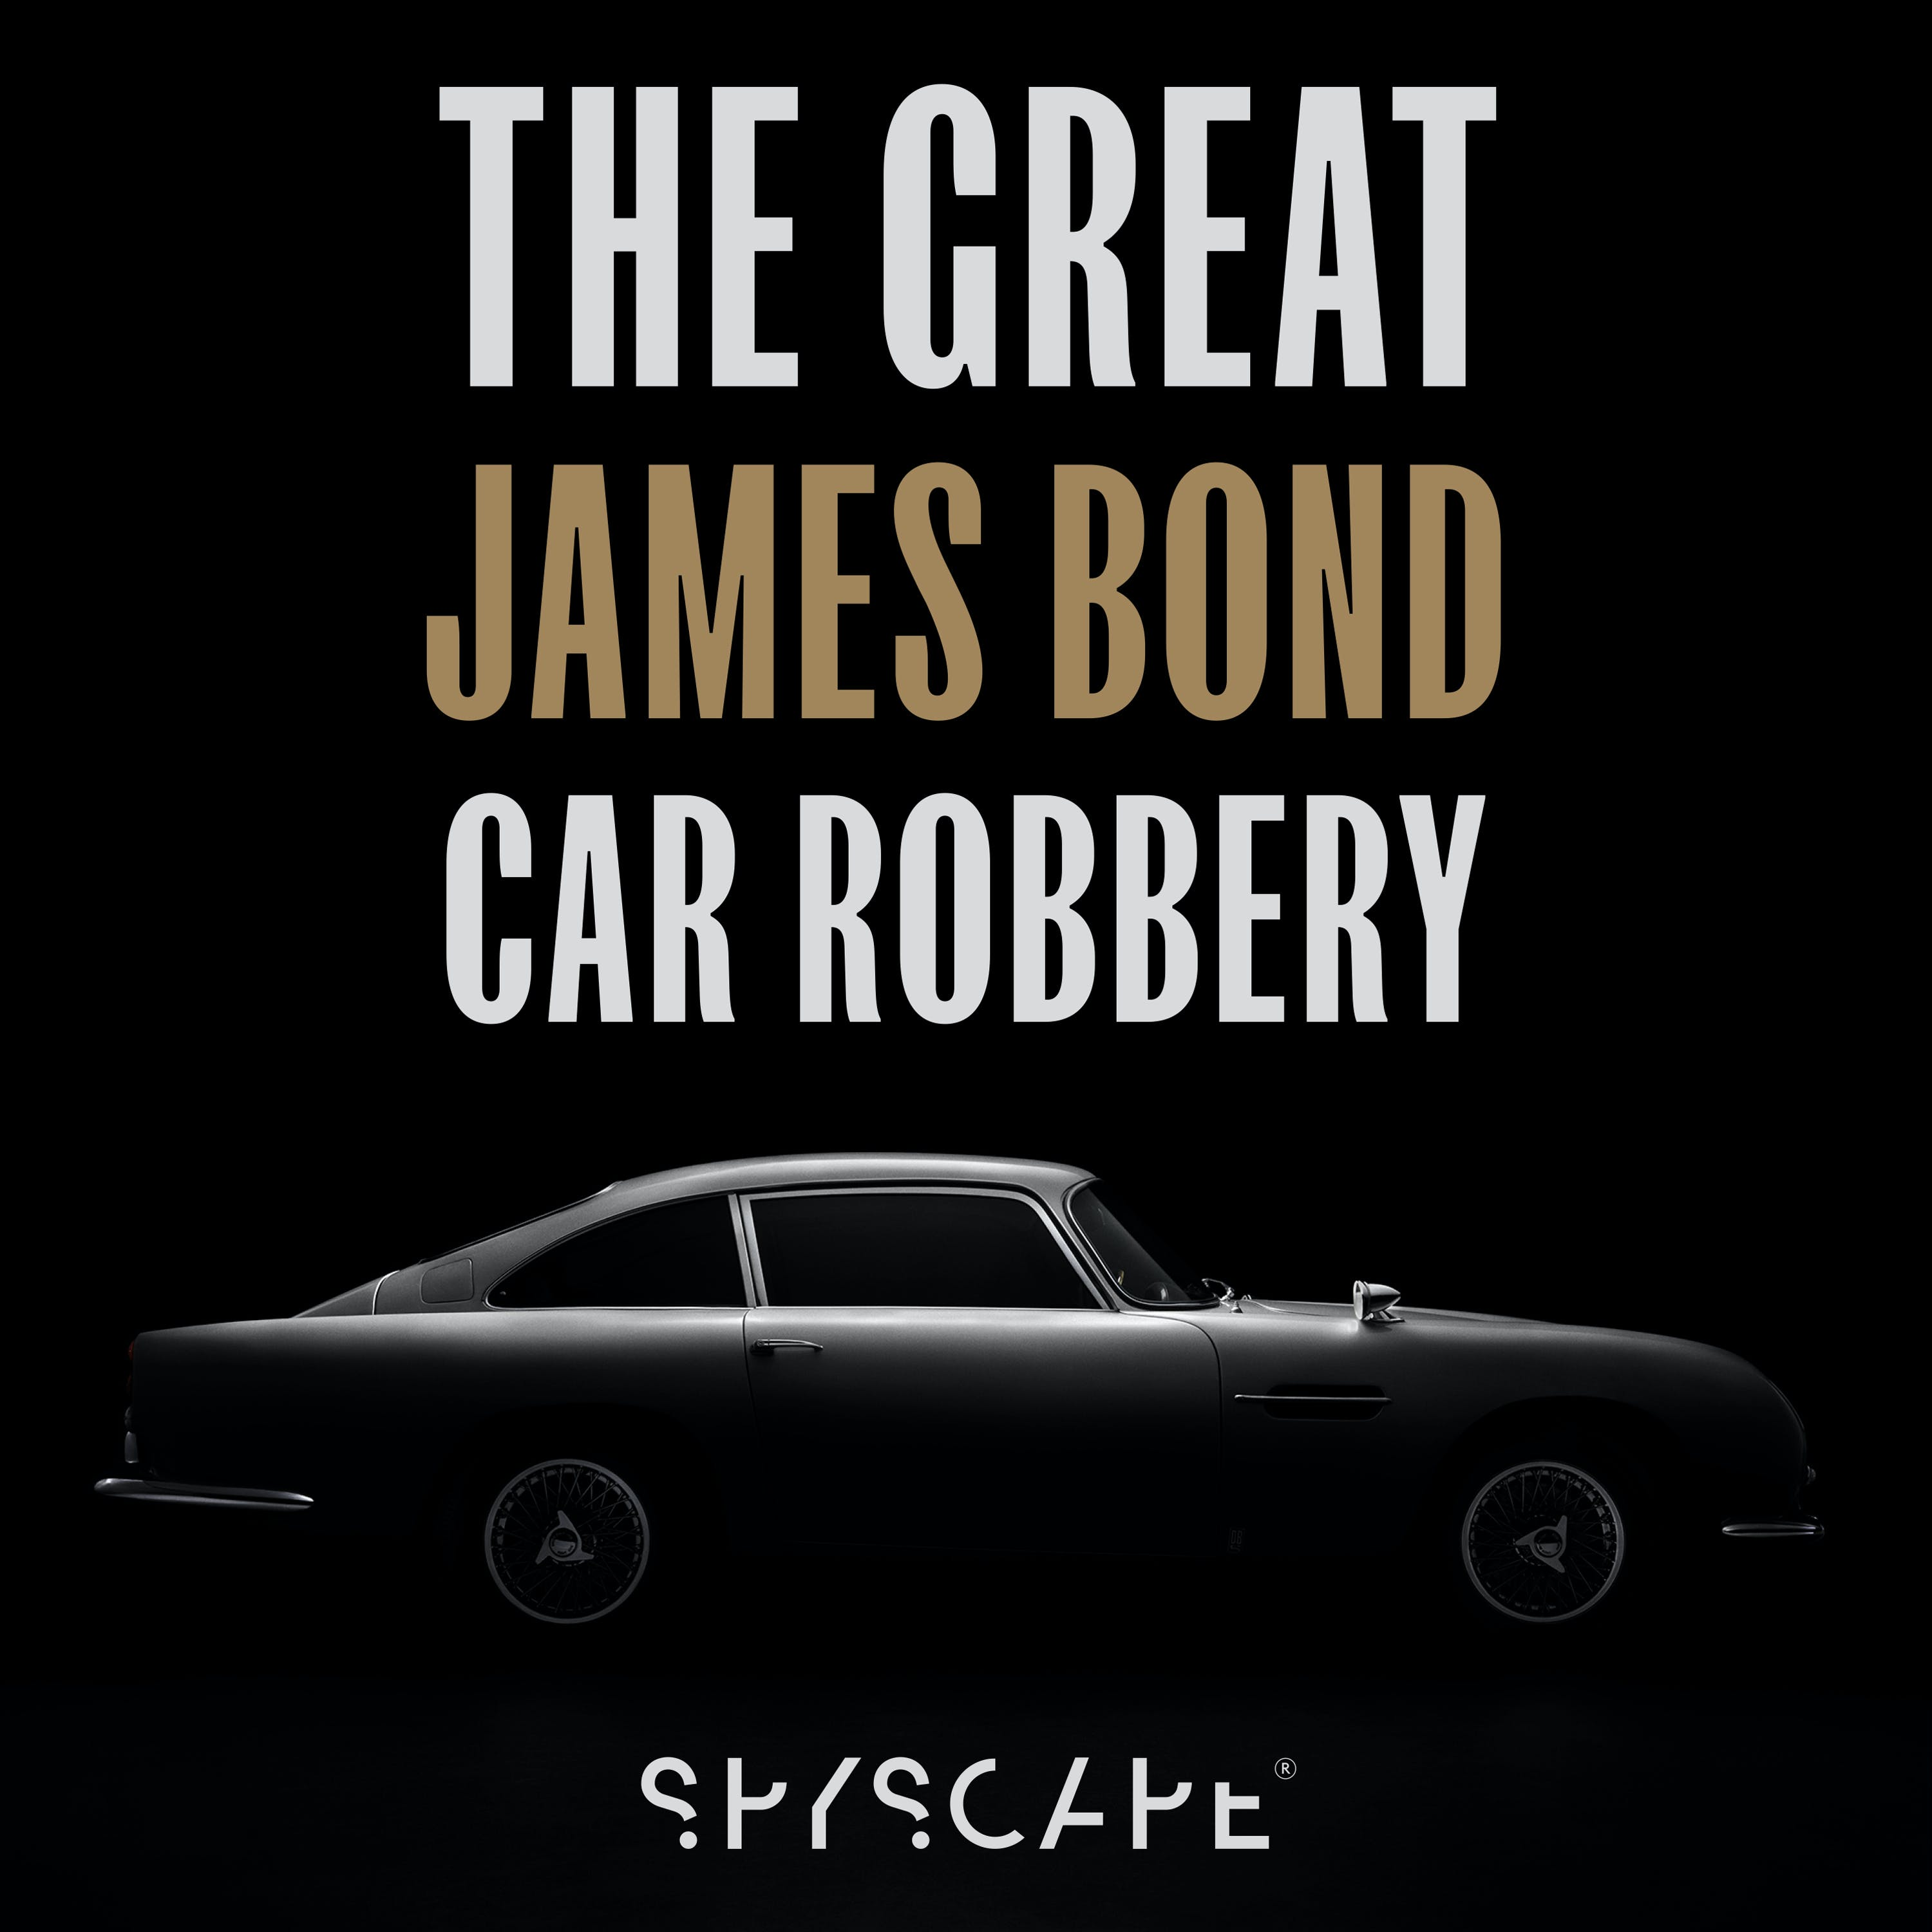 Introducing... The Great James Bond Car Robbery